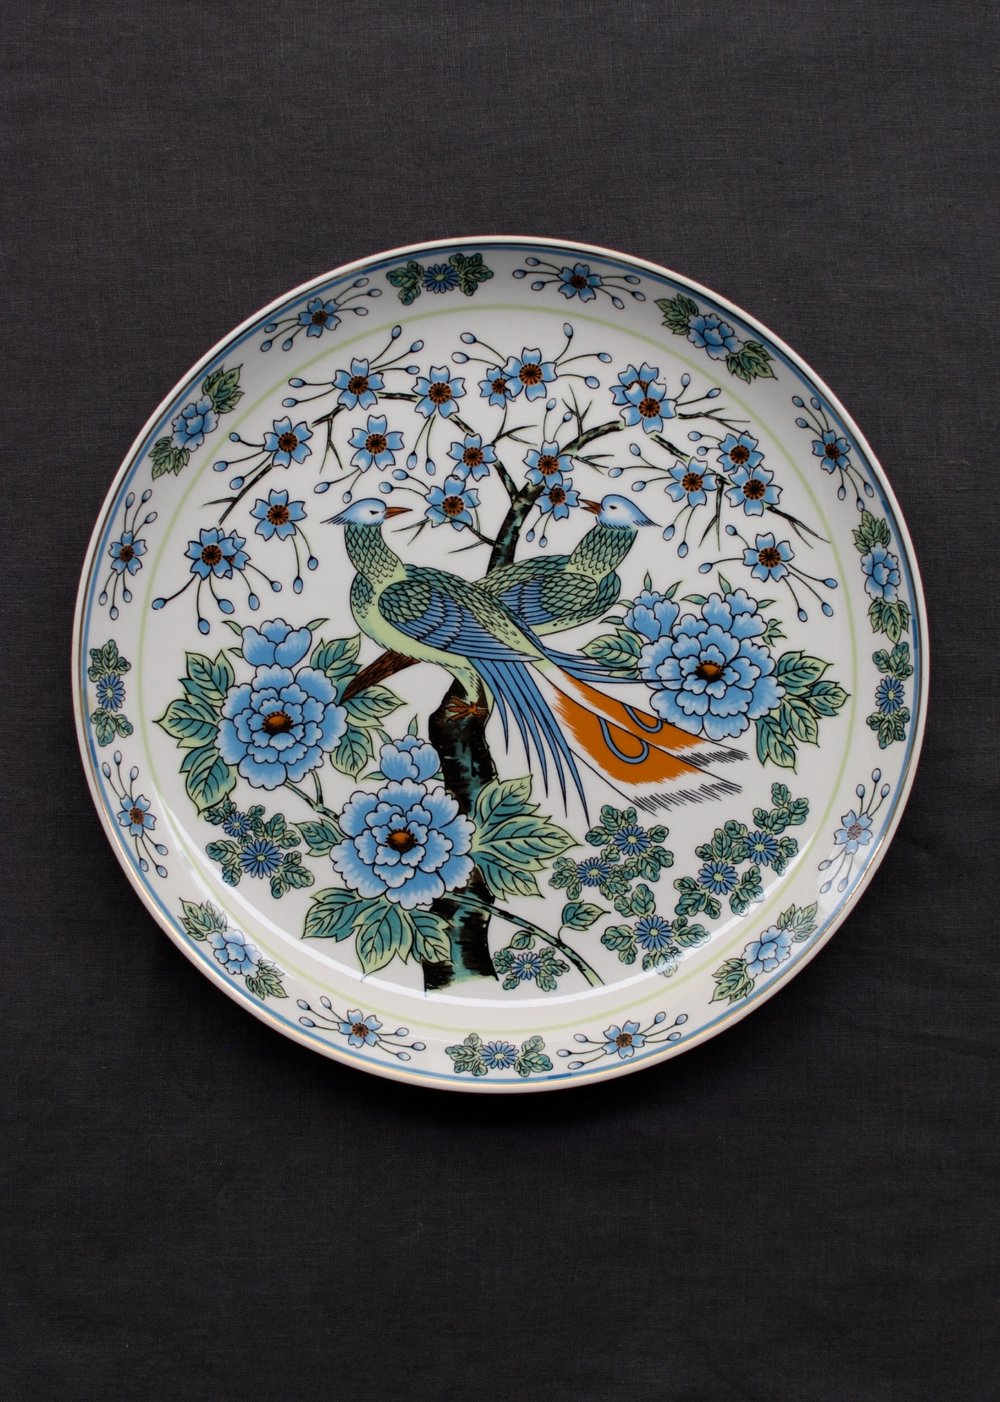 Beautiful decorative charger with bird and floral motifs.